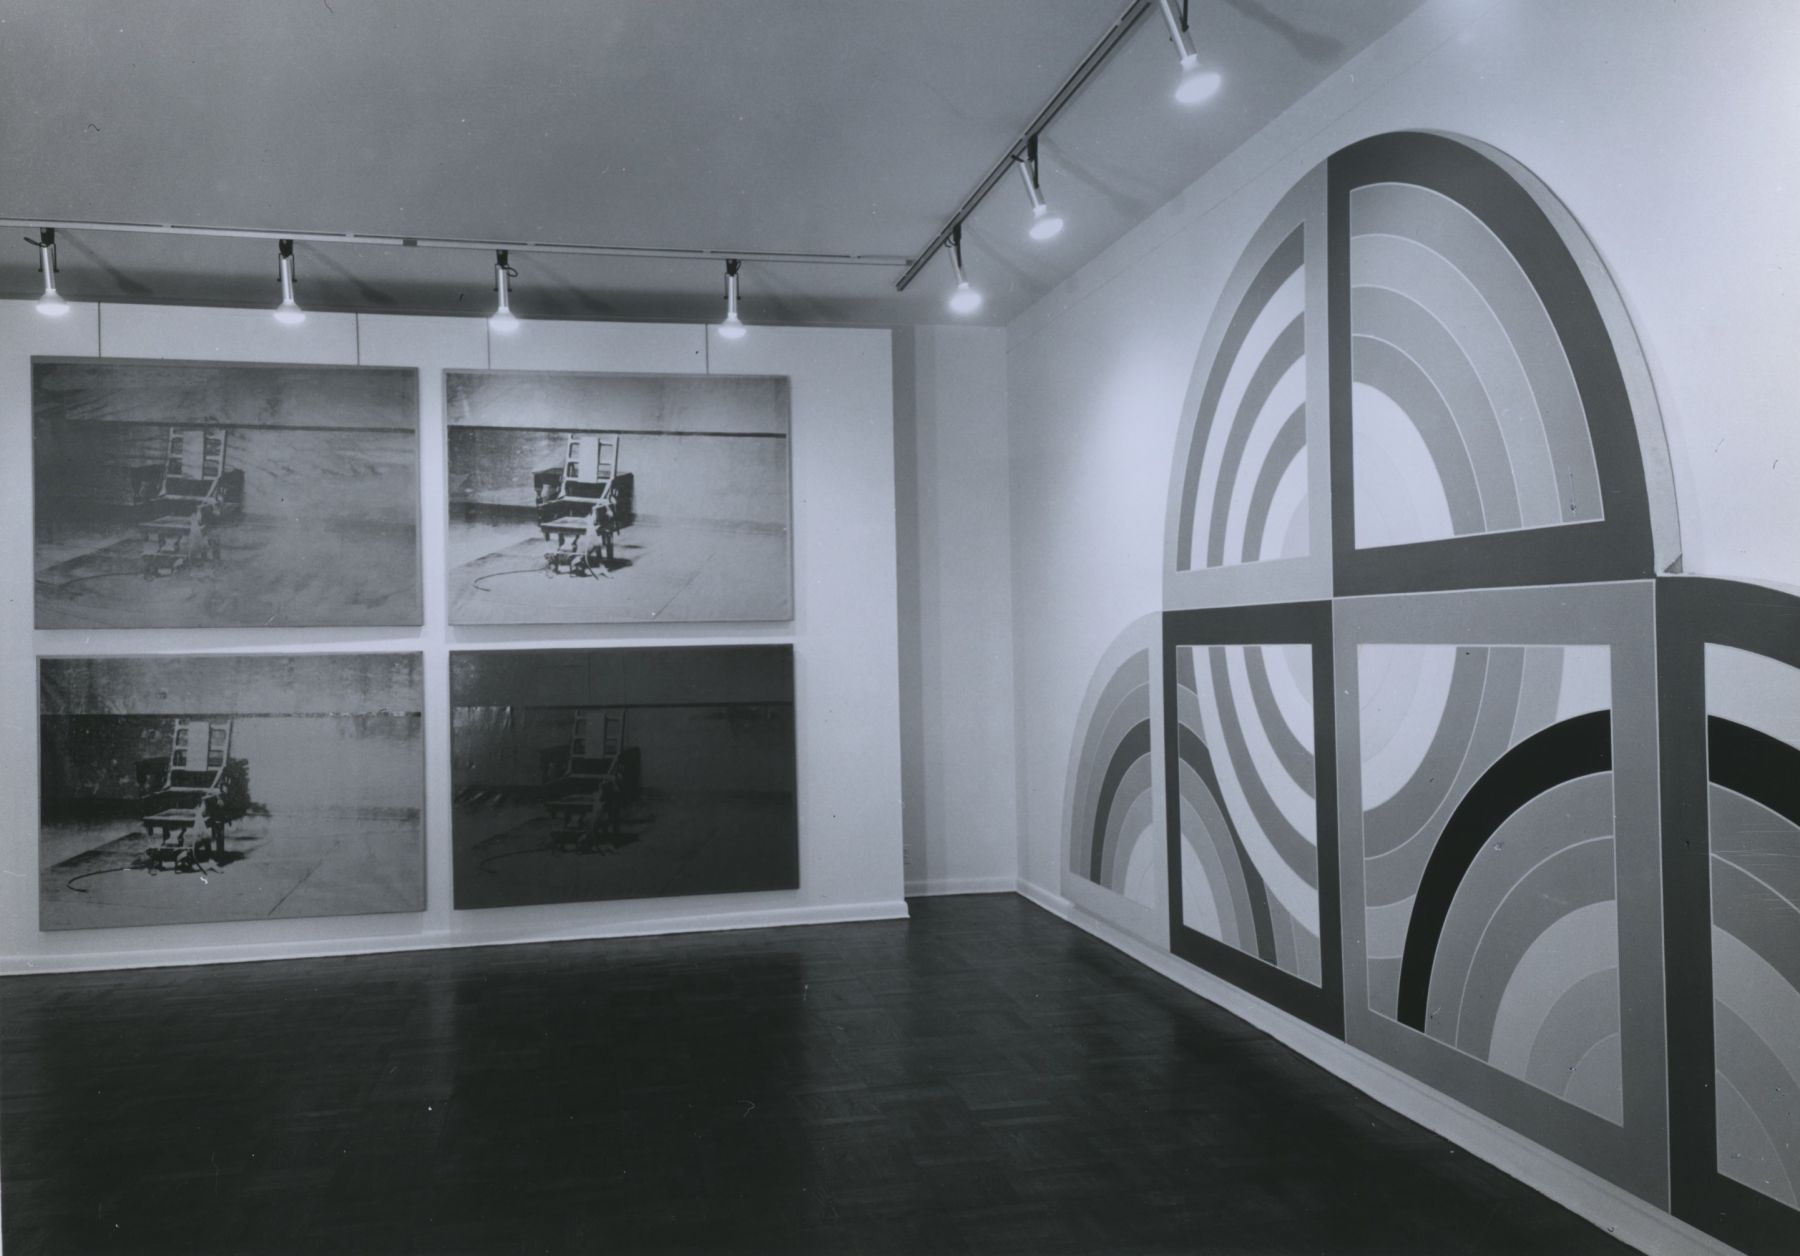 Installation view, Group Exhibition, 4 EAST 77.